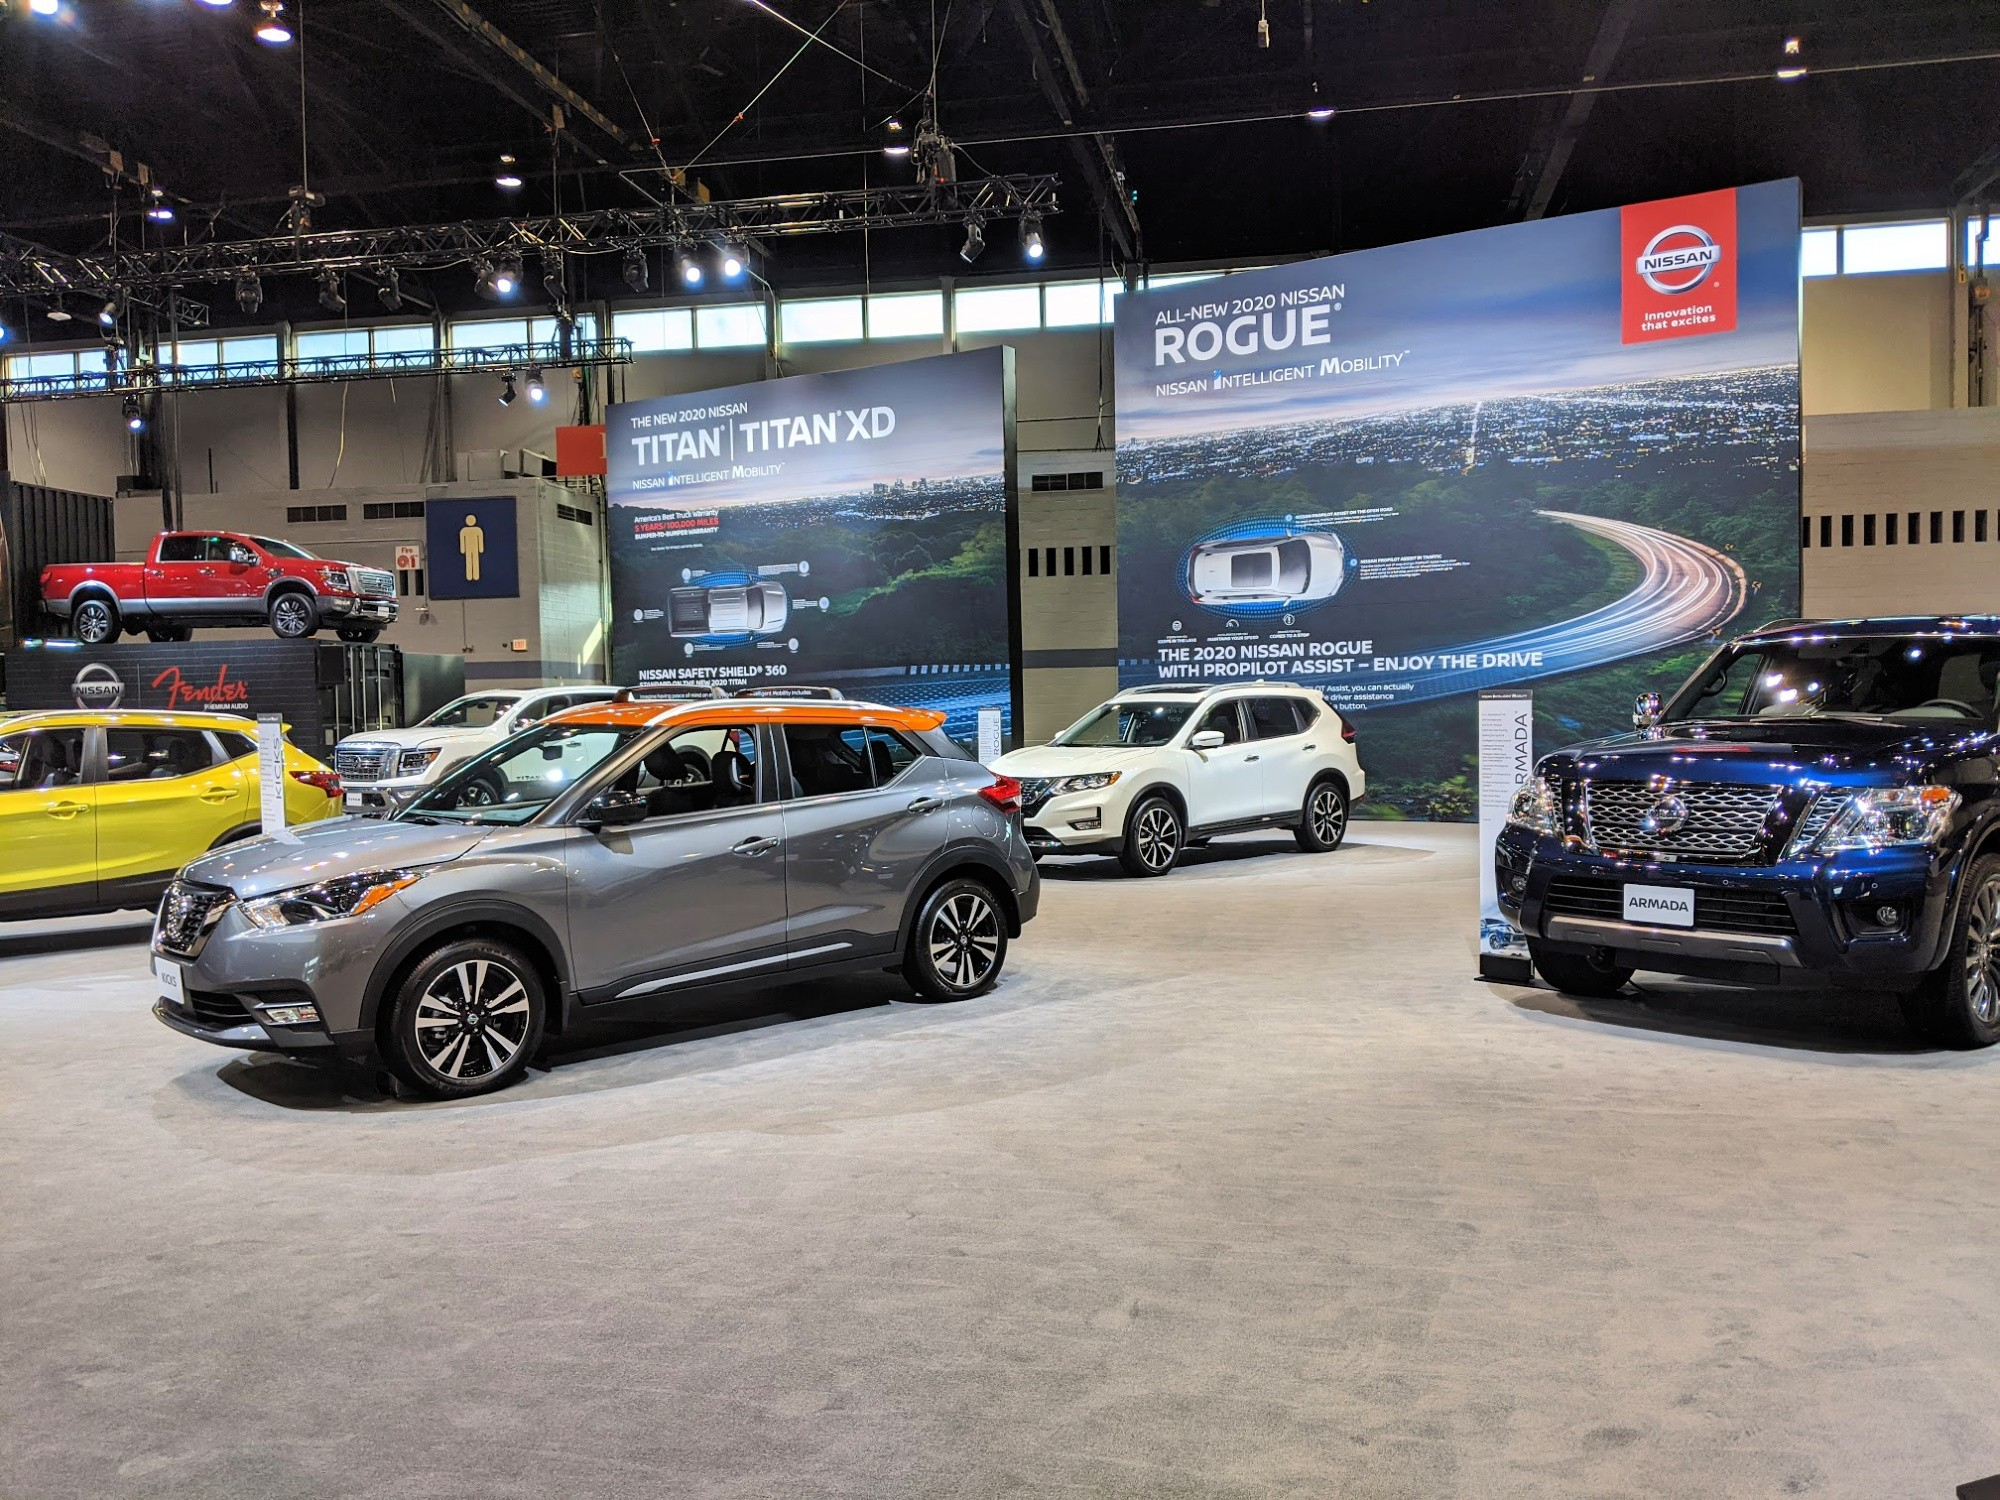 Nissan at Chicago Auto Show 2020